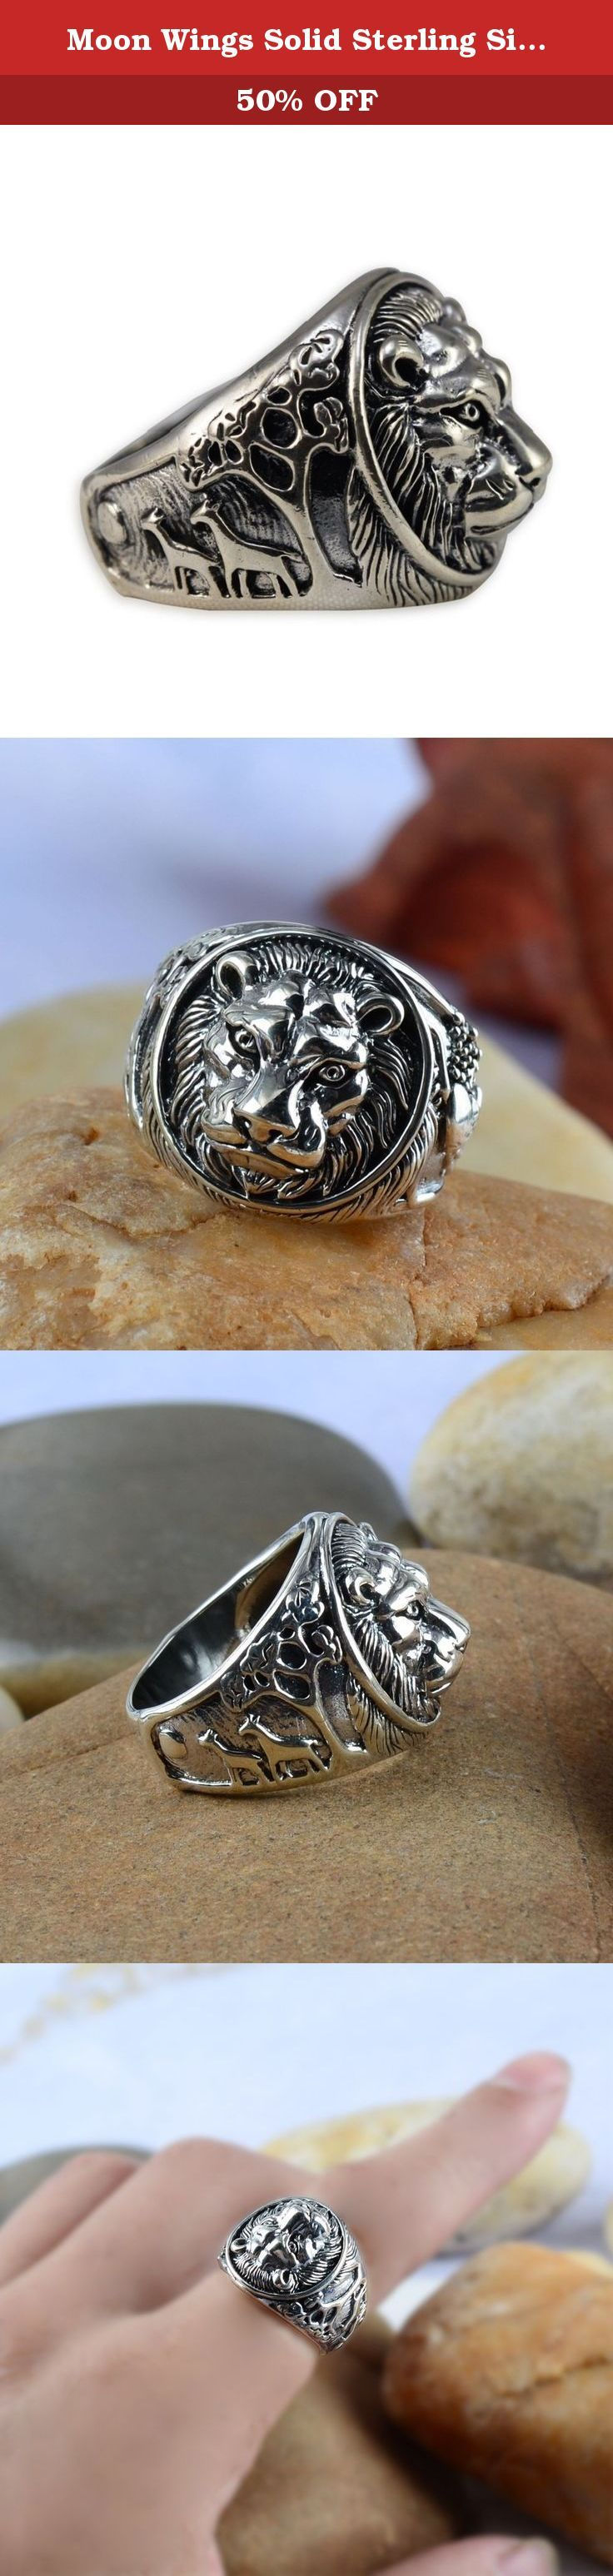 Moon Wings Solid Sterling Silver Lion Vintage Mens Ring Size 10. Product specifications Weight: approx. 14 g (solid sterling silver); Ring Size: 10 (US Ring Size); Ring Surface: 1.8cm Material 100% international standard S925 sterling silver. Sterling silver refers to 92.5% silver content. Due to additional content, S925 is resistant to deformation not easy deformation. And the hardness of the S925 sterling silver is also greatly enhanced. Our sterling silver jewelry has unique texture…